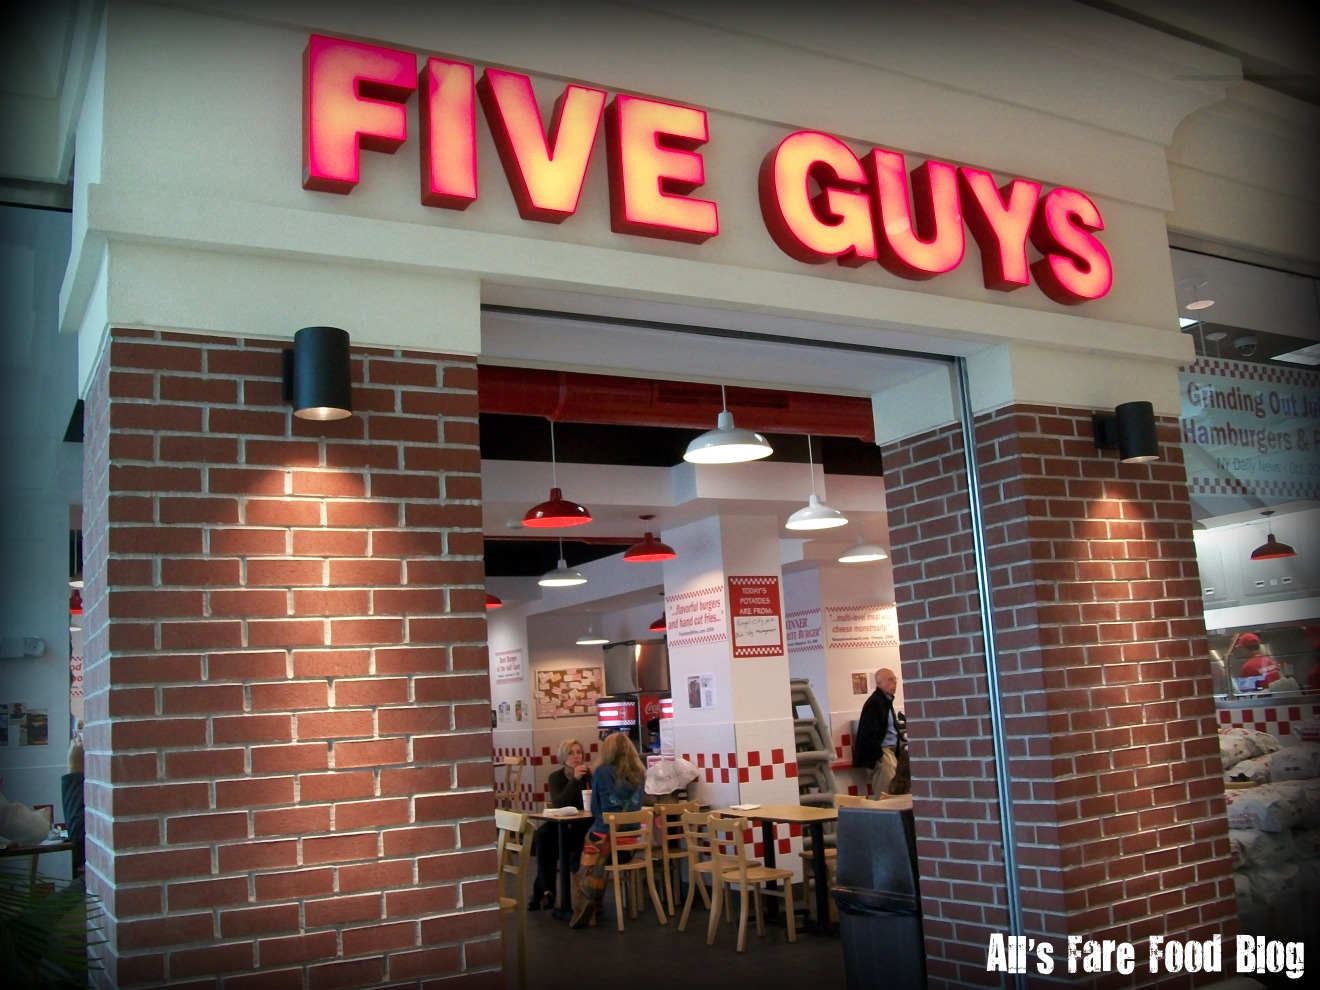 Five Guys Games Champion. Join The Team. Be This Month's Five Guys Fan. Carousel content ends. Locations Order Careers Menu Nutrition and Allergen Info Gift Cards Purchase Gift Cards.